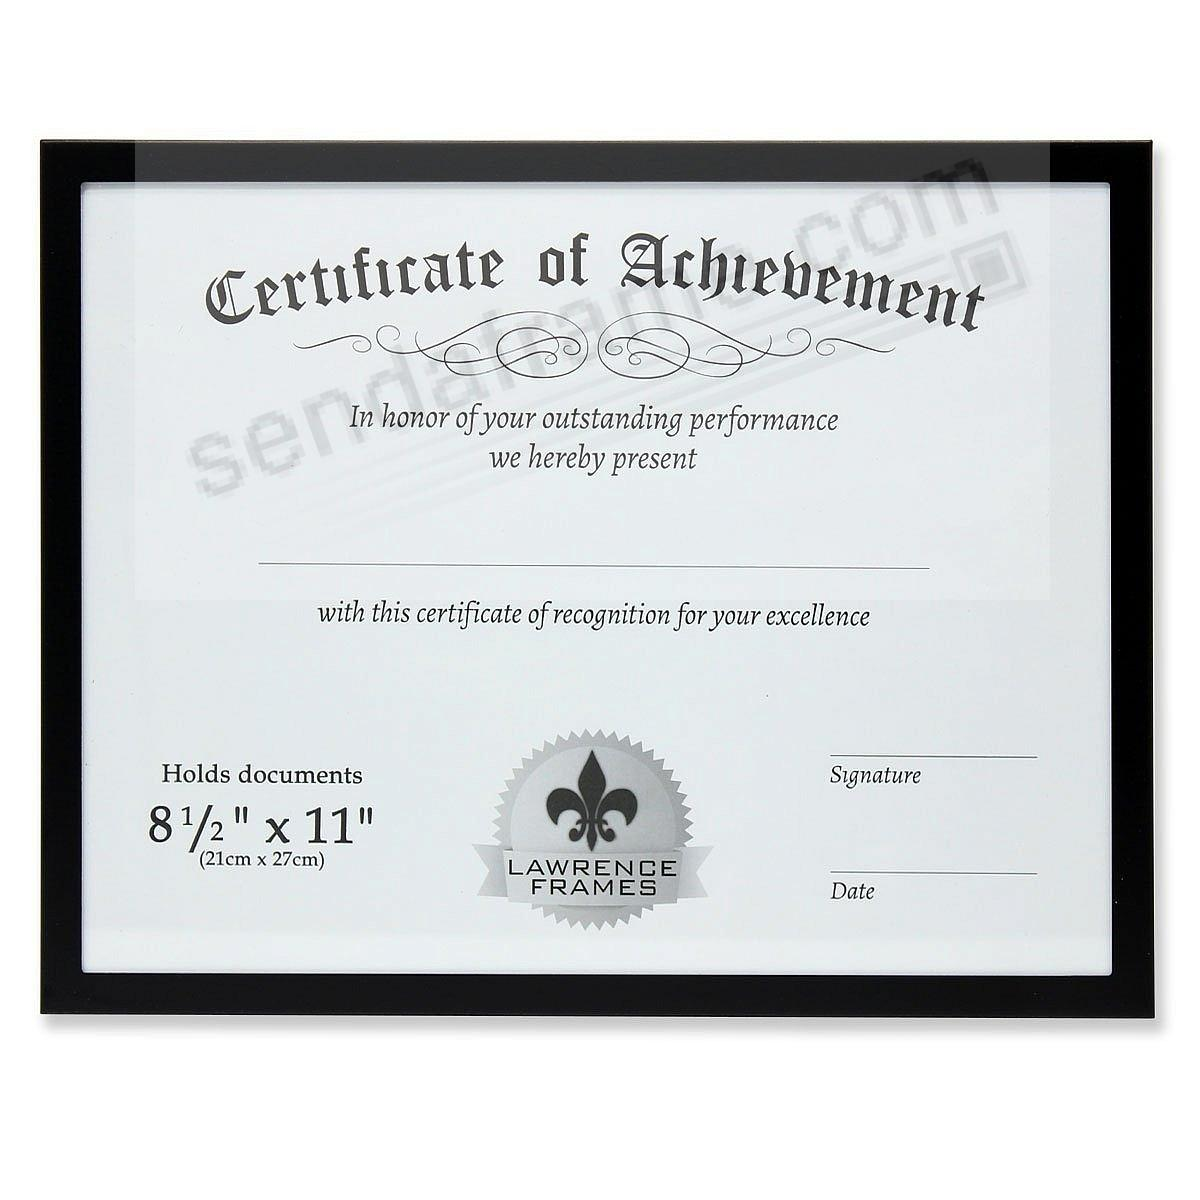 Certificate-size Black Aluminum 11x8½ frame by Lawrence®